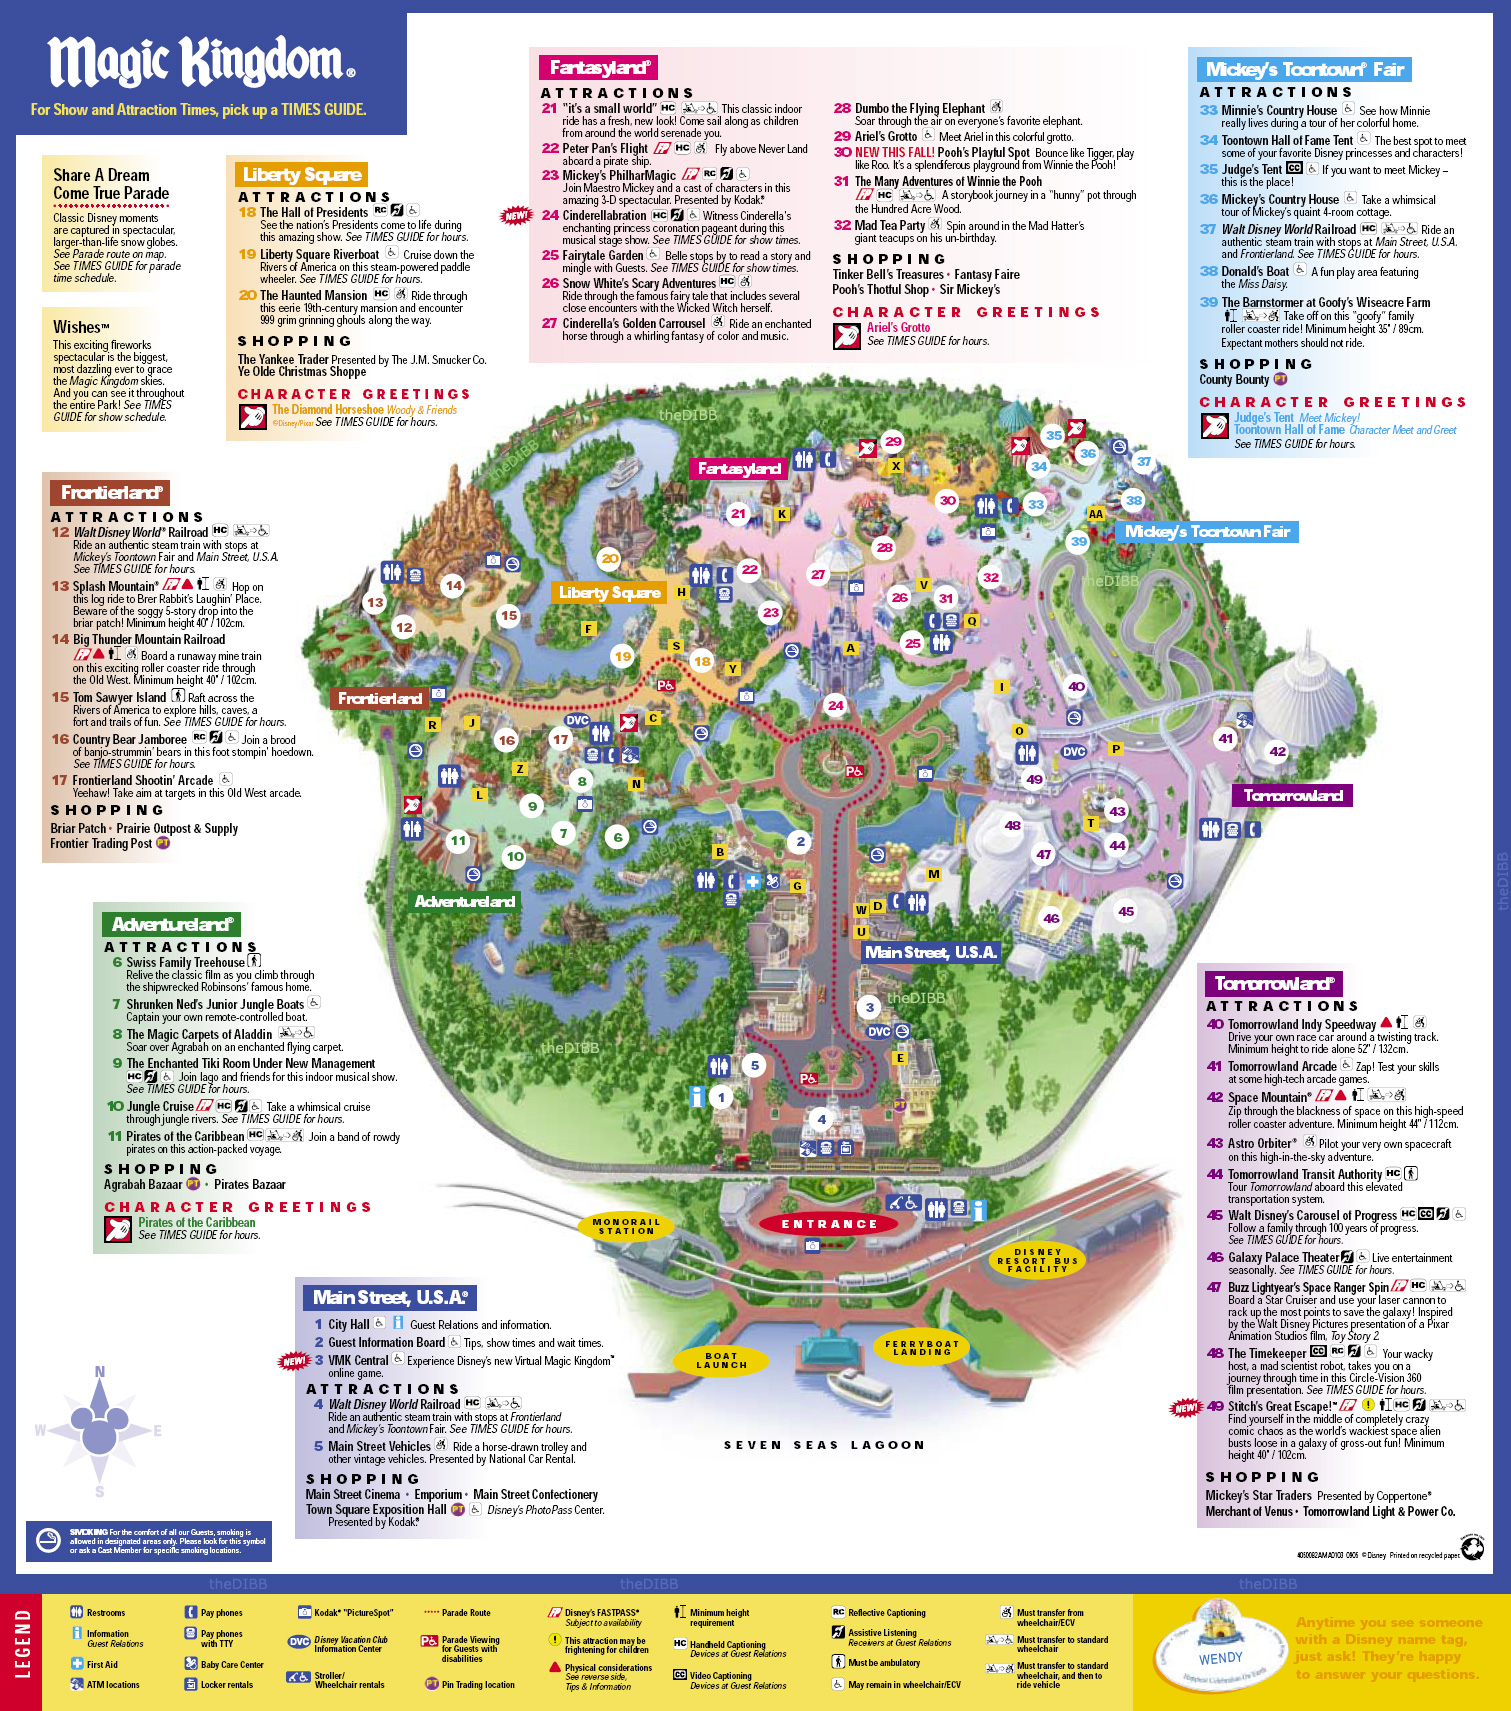 Disneyworld Maps 2015 | New Calendar Template Site